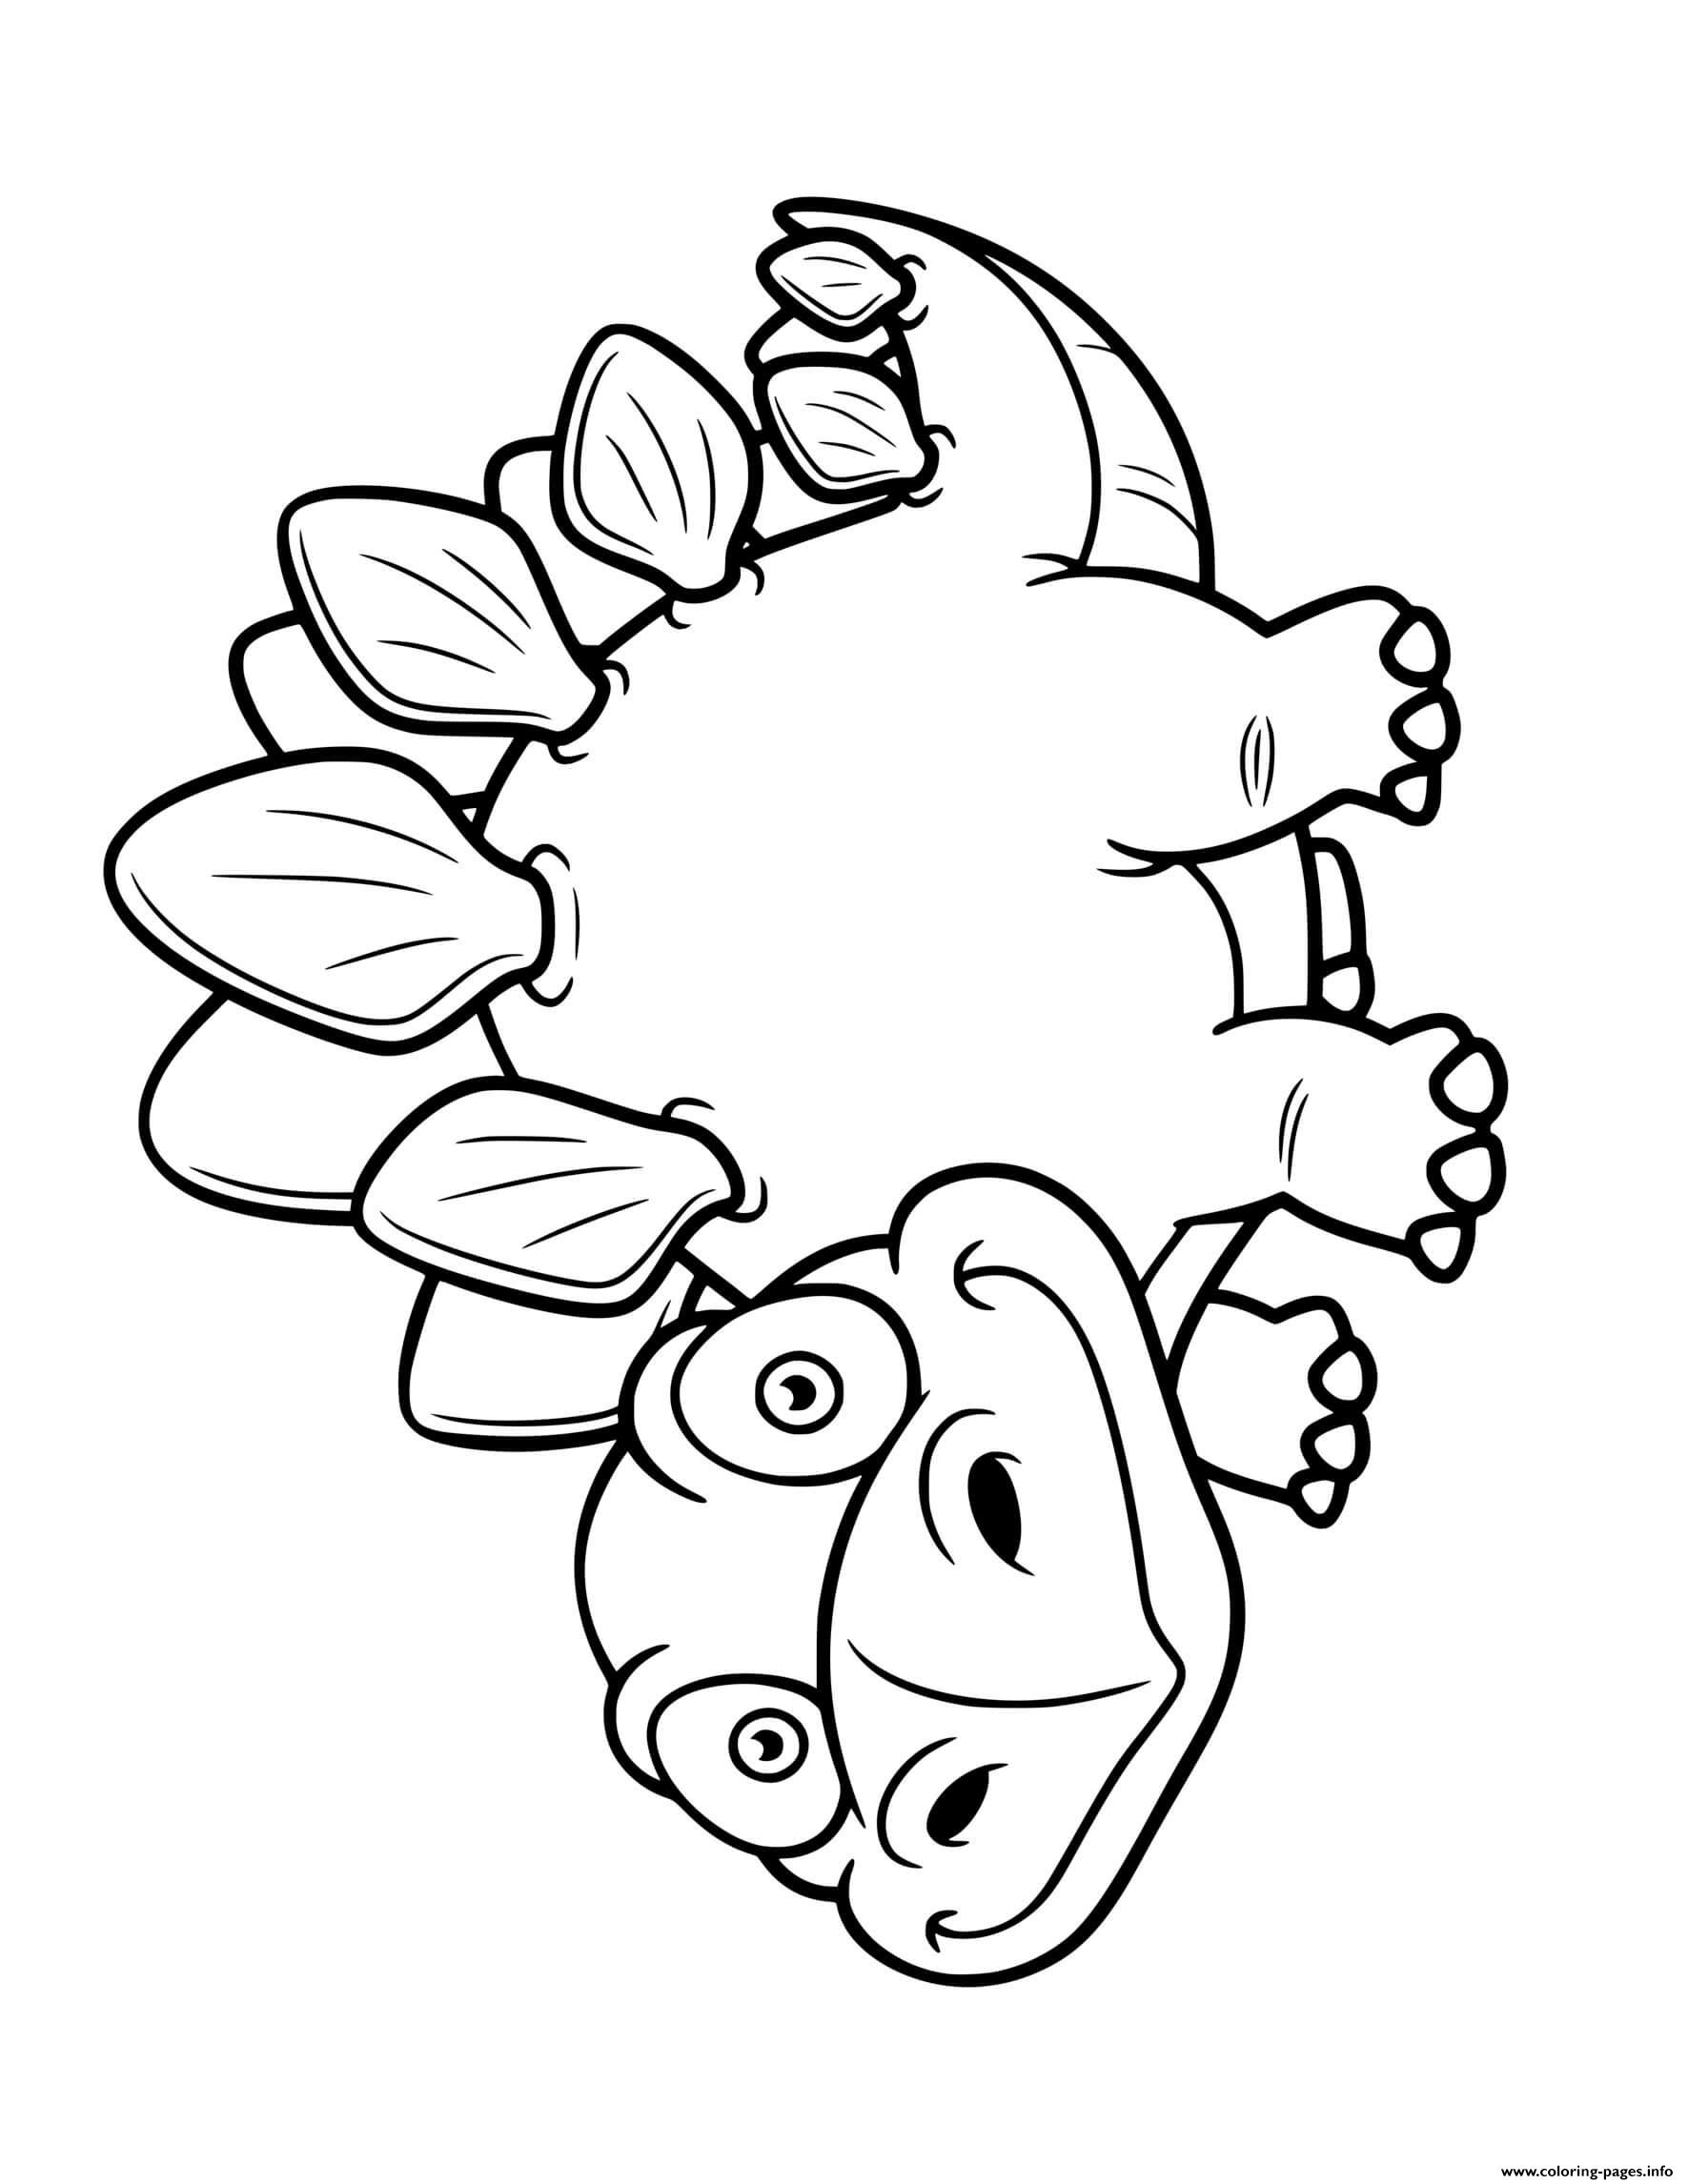 stegosaurus pictures to color funny stegosaurus dinosaur cartoon coloring pages for kids to stegosaurus pictures color